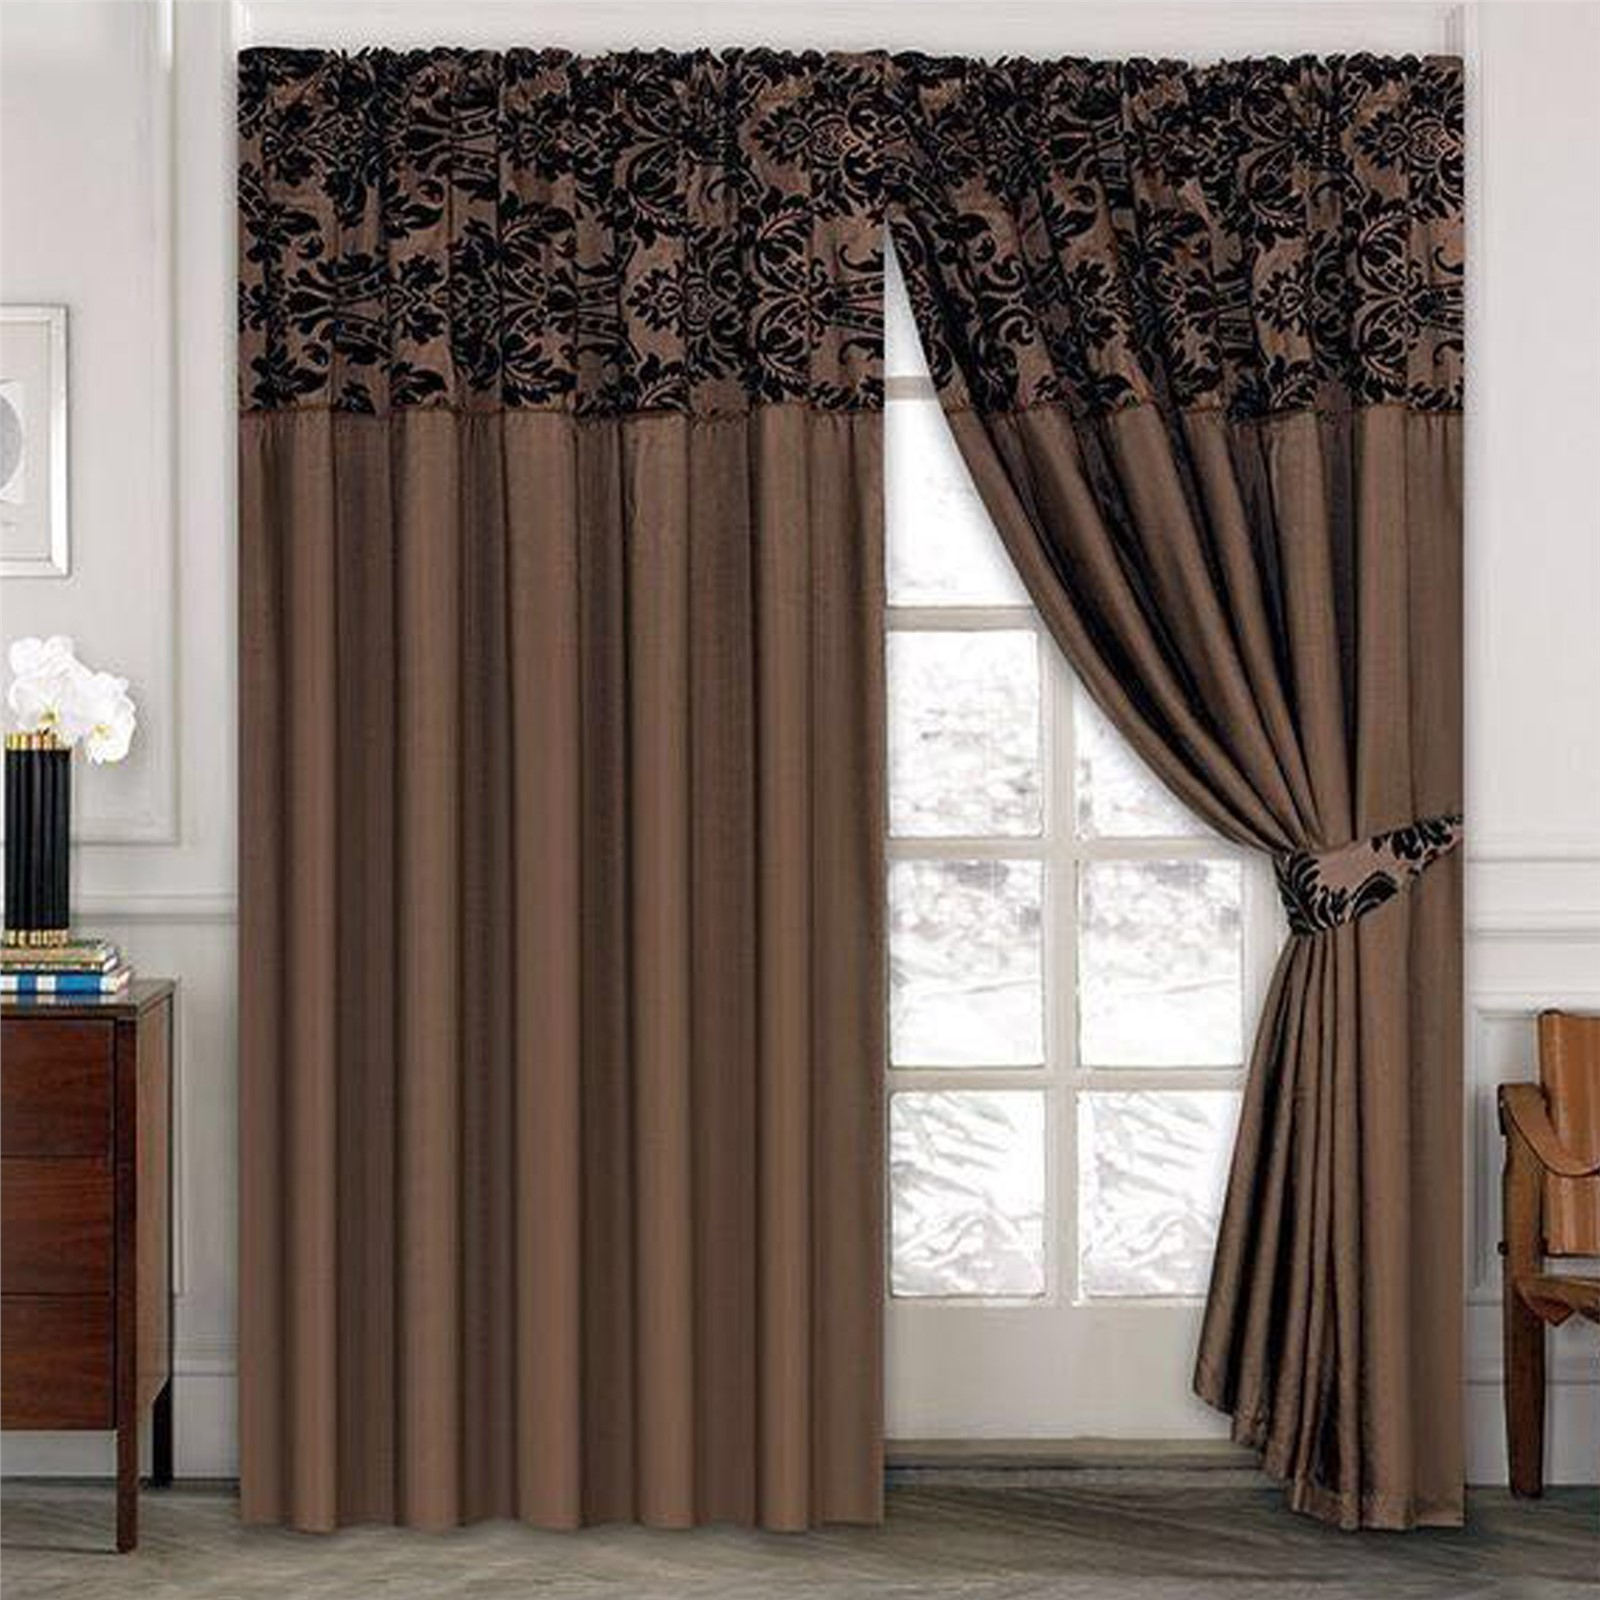 Luxury Damask Curtains Pair Of Half Flock Pencil Pleat. Dining Room Table Base. Decorative Papers. Hotel Rooms Tonight. Lead Glass For X Ray Room. Volunteer For Free Room And Board. Reclaimed Dining Room Table. Beach Themed Room Ideas. Best Dining Room Tables